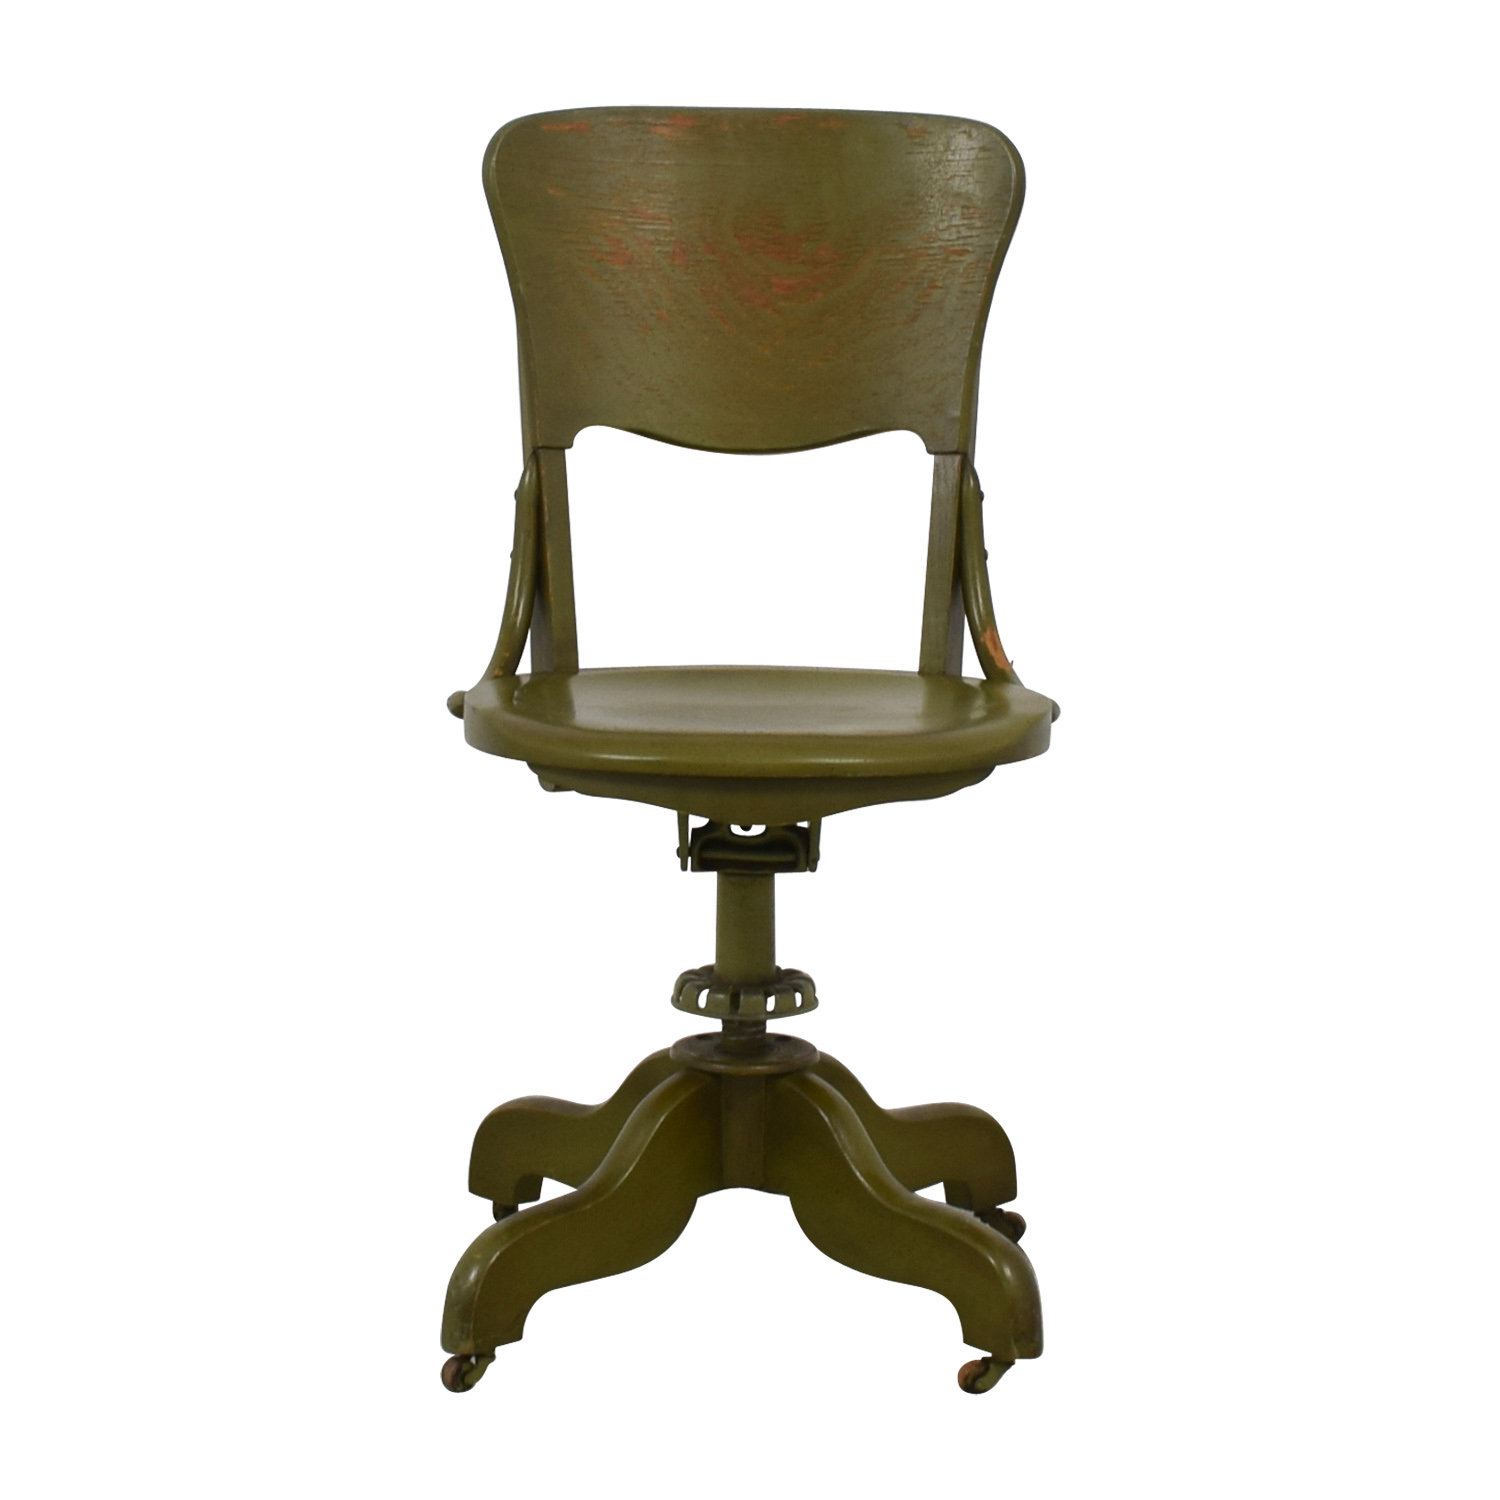 Antique Olive Green Swivel Desk Chair coupon